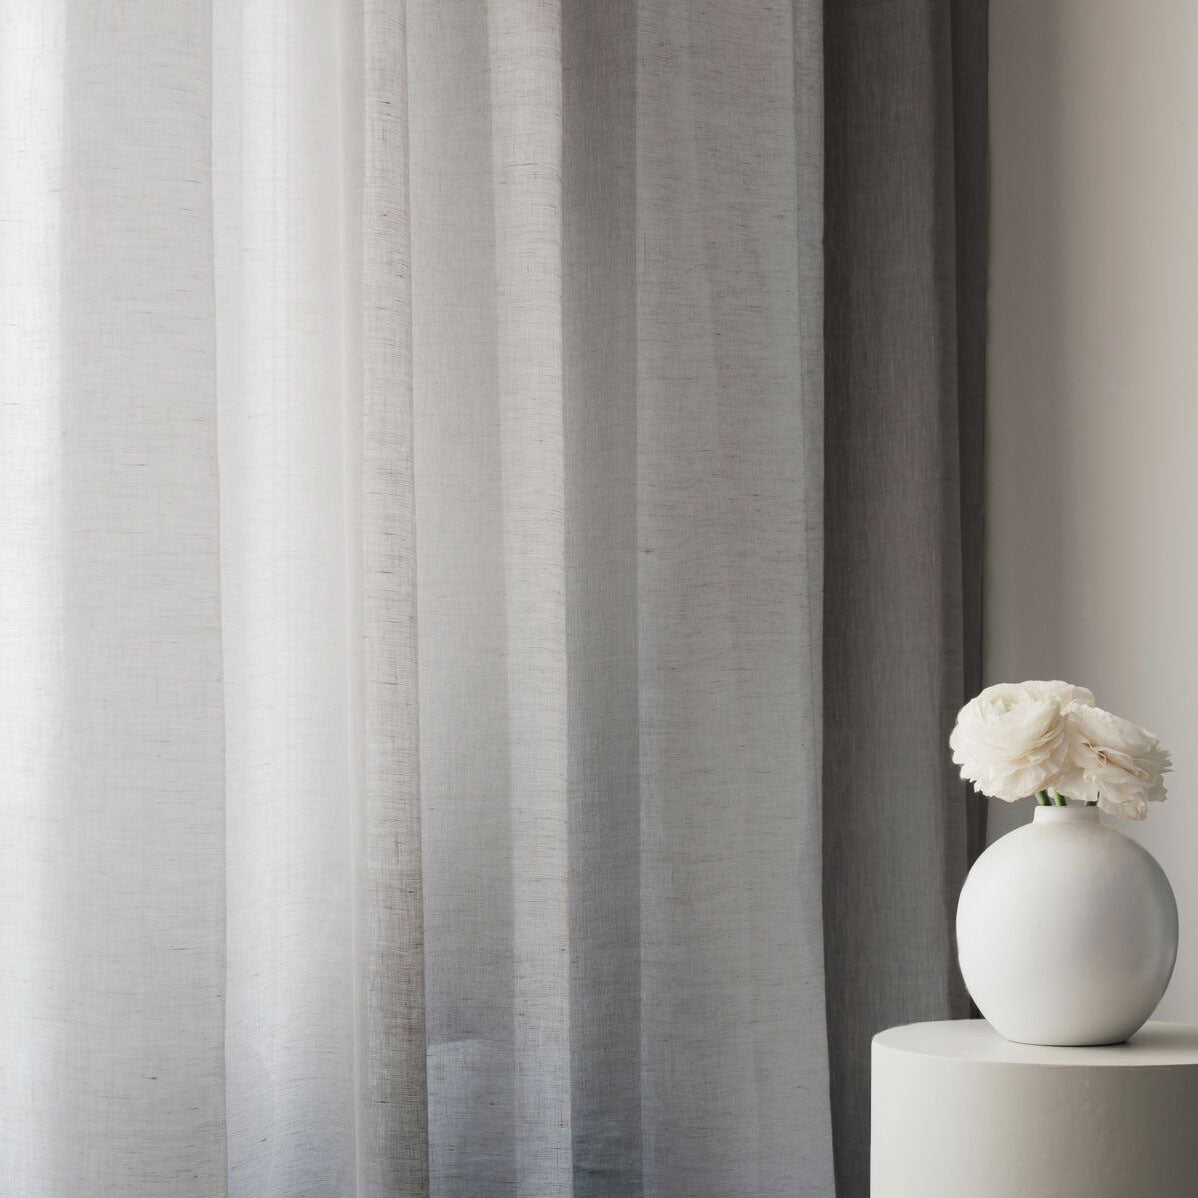 Curtain sheer linen fabric sample – Grey